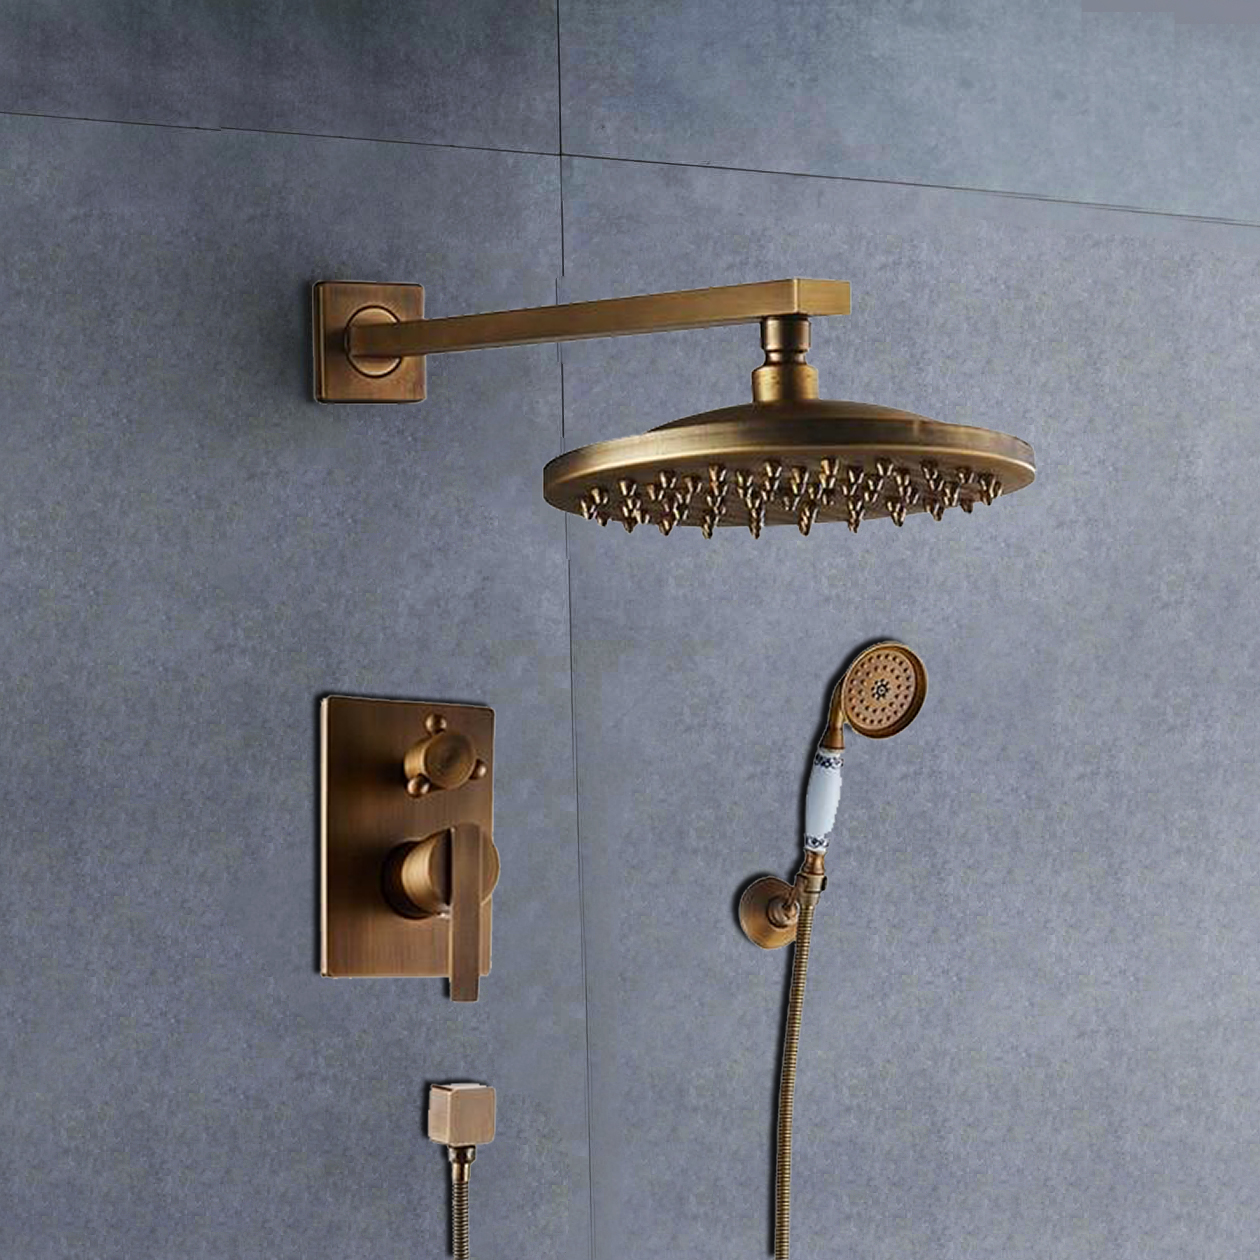 Bathselect Ancient Round Antique Brass 8 Rainfall Wall Shower Head With Hand Held Shower